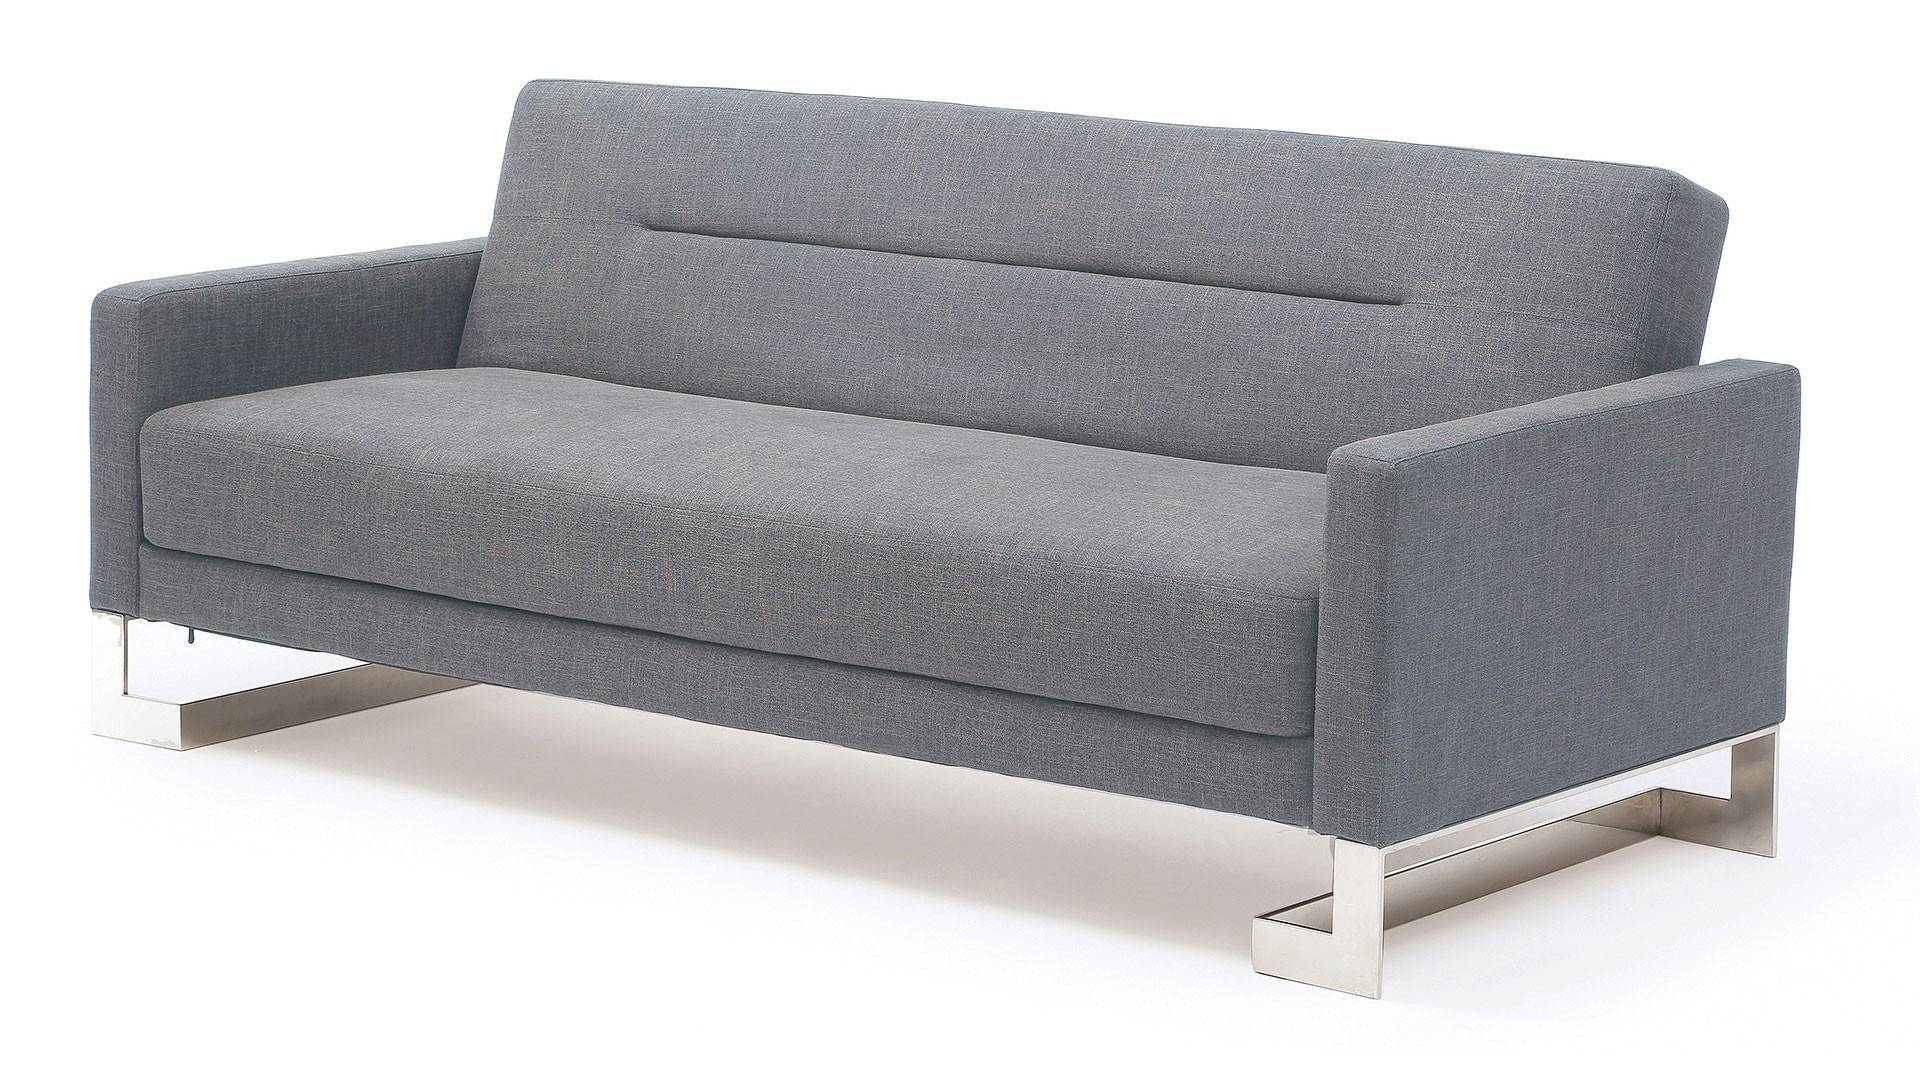 Buy Sofa Bed Online At Home Usa Savina Sofa Sleeper In Light Blue Pleated Backrest Modern Style